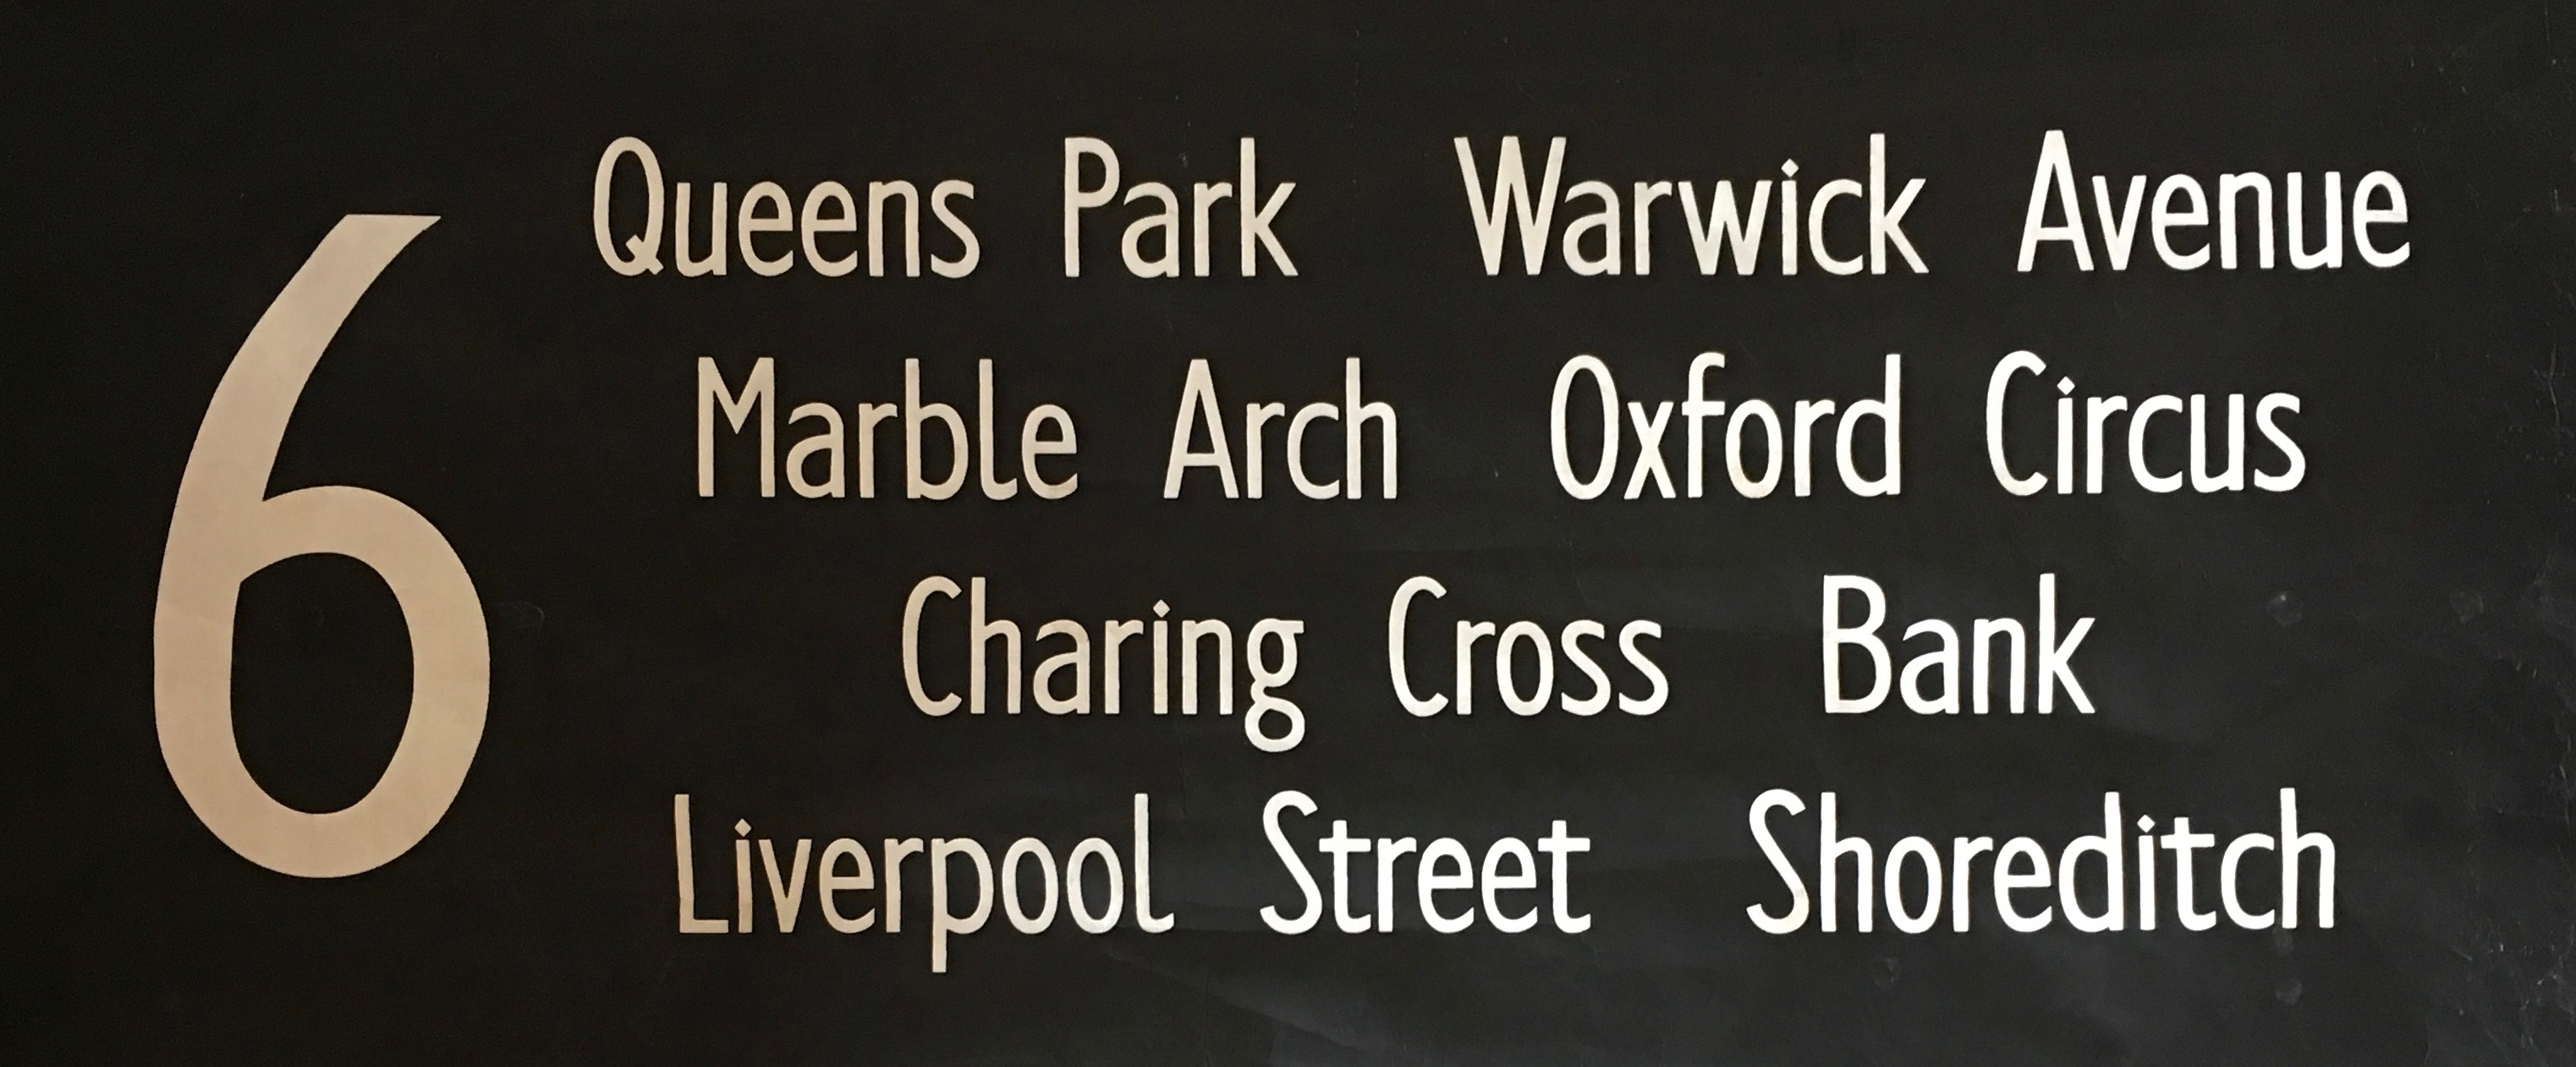 6 Queens Park, Warwick Avenue, Marble Arch, Oxford Circus, Charing Cross, Bank, Liverpool Street, Shoreditch